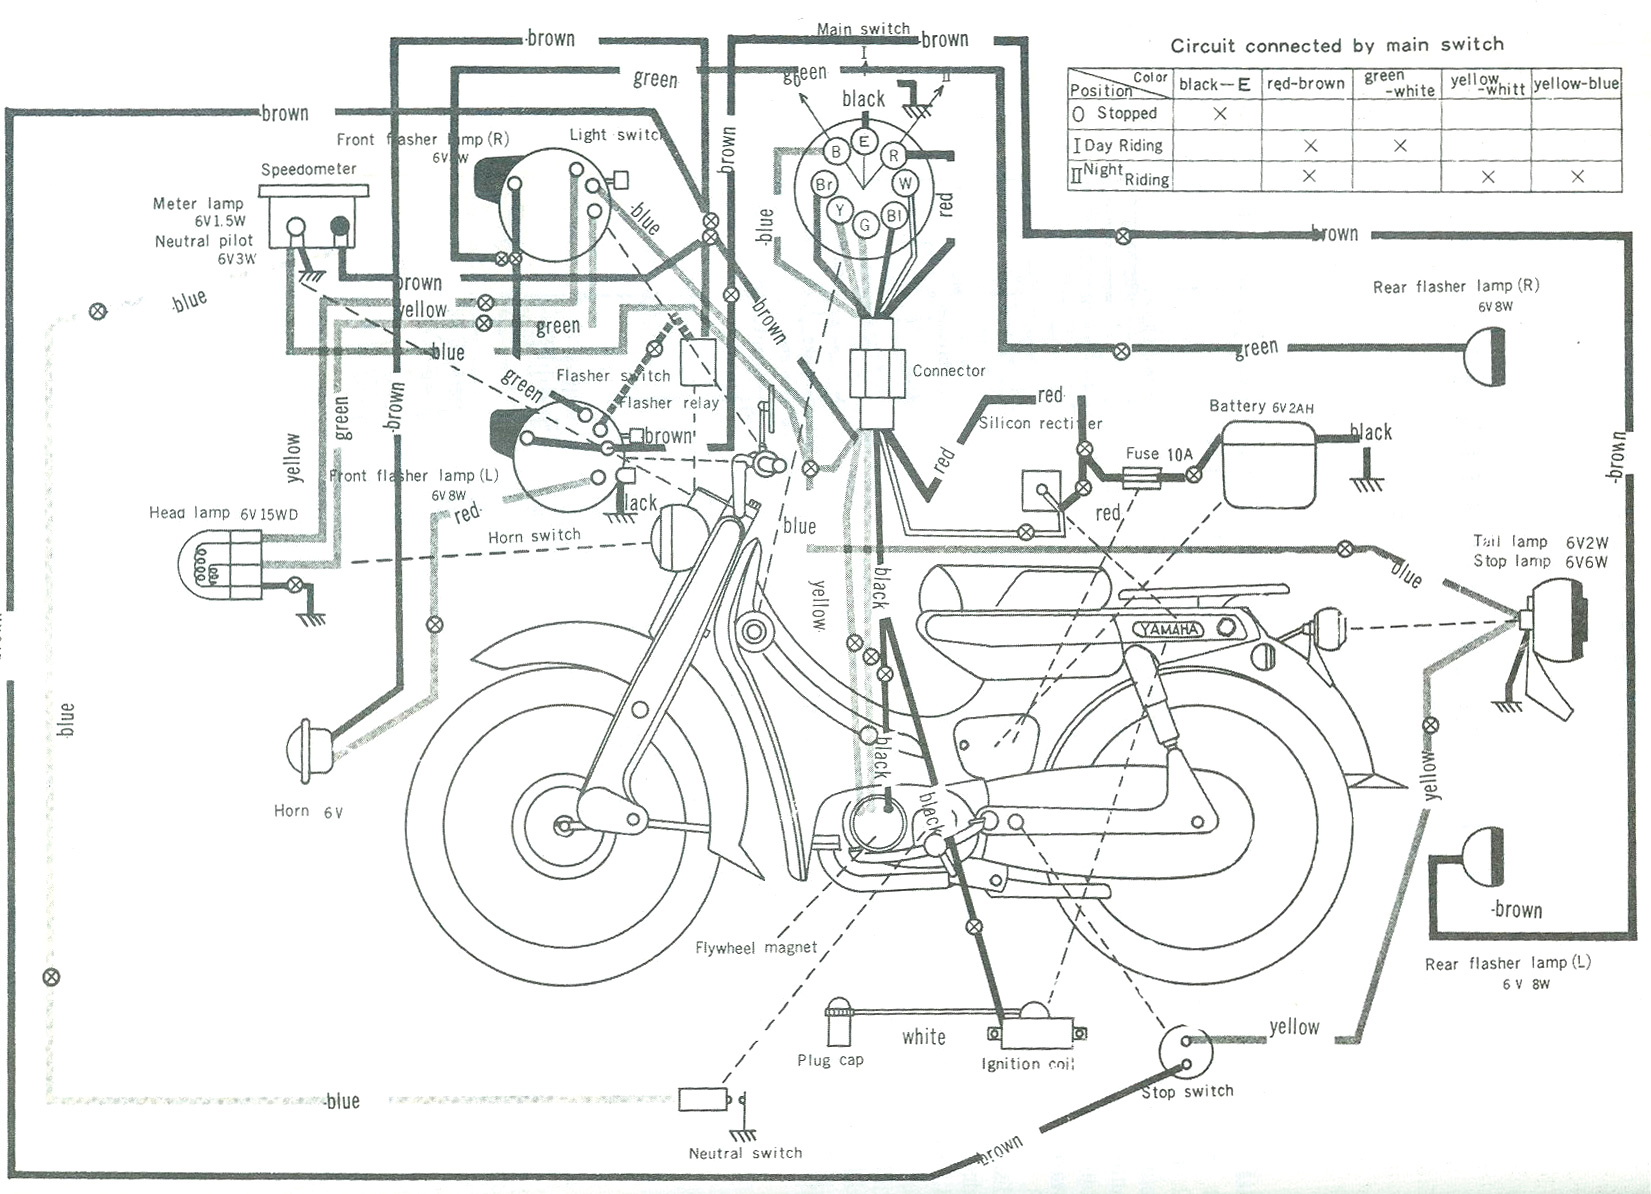 u5e_wiring servicemanuals motorcycle how to and repair readingrat net 1979 Yamaha It 400 Enduro at cos-gaming.co